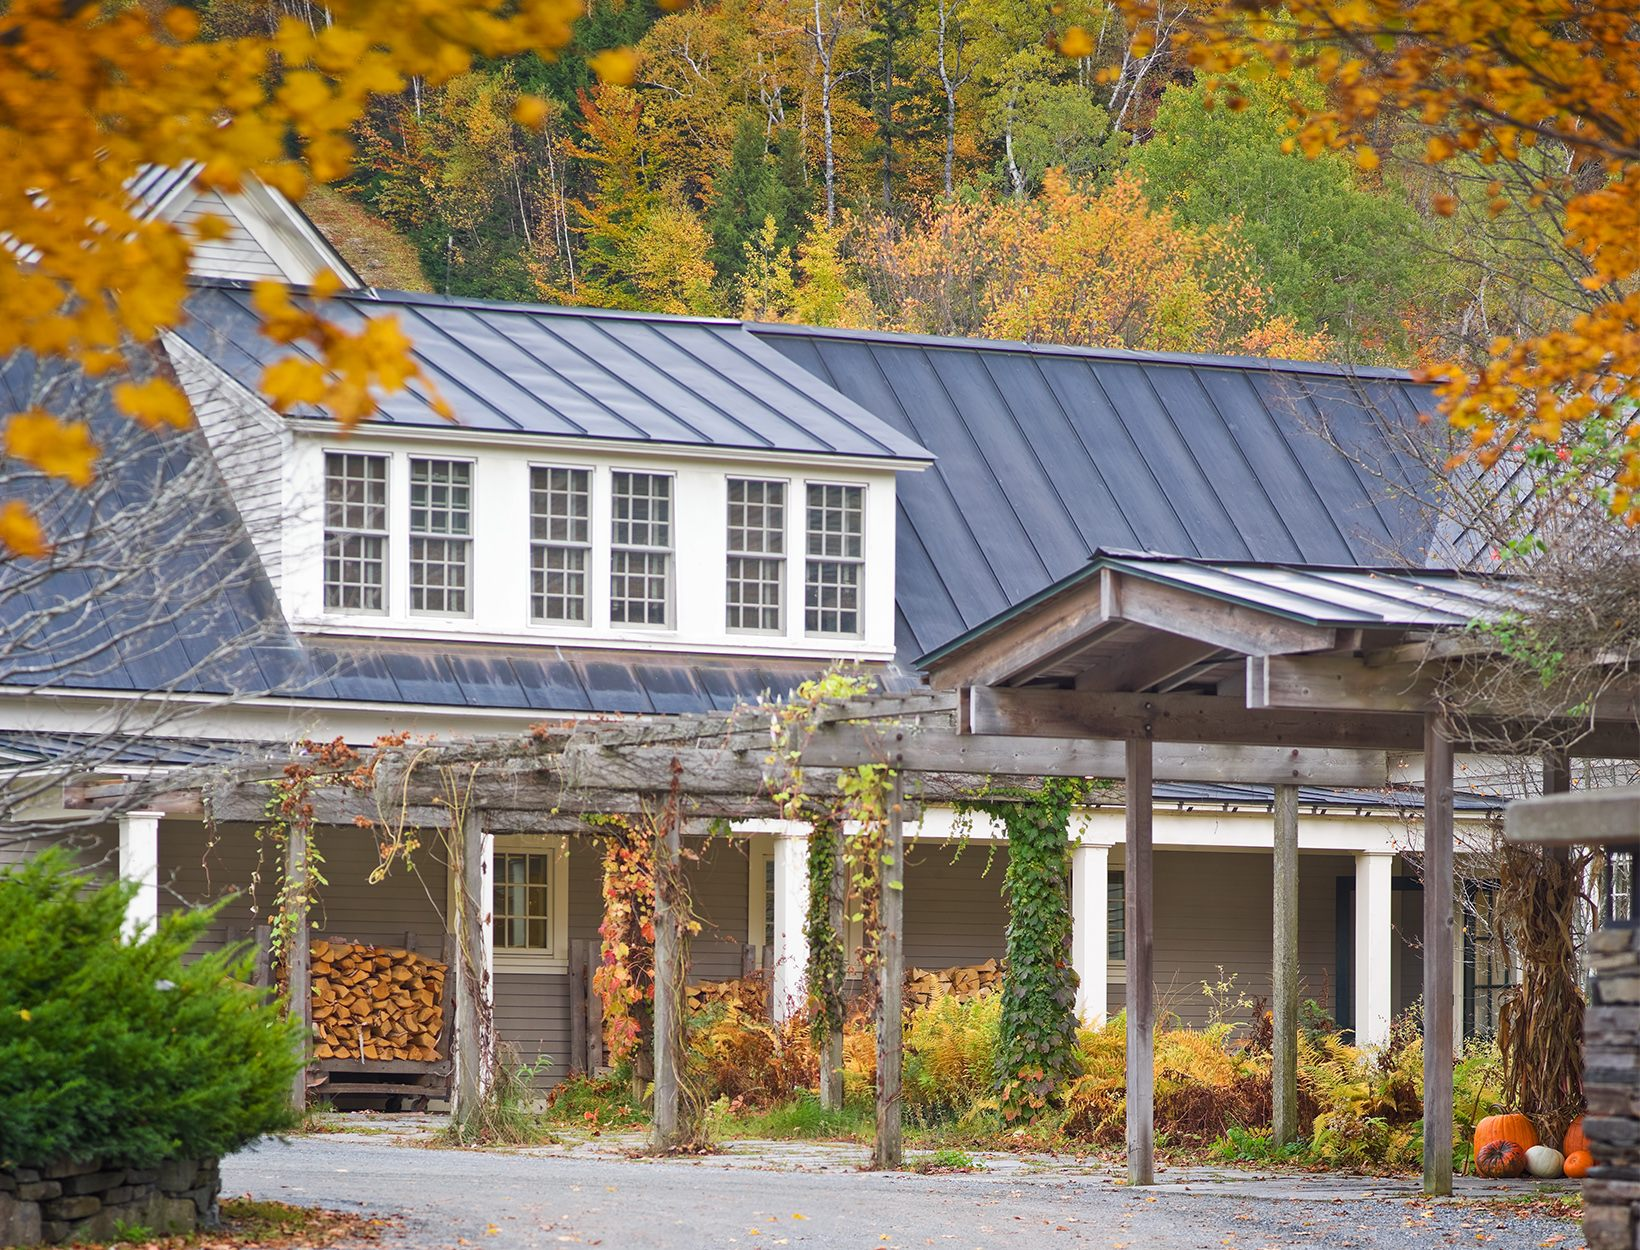 Twin Farms<br><em>Barnard, Vermont</em>